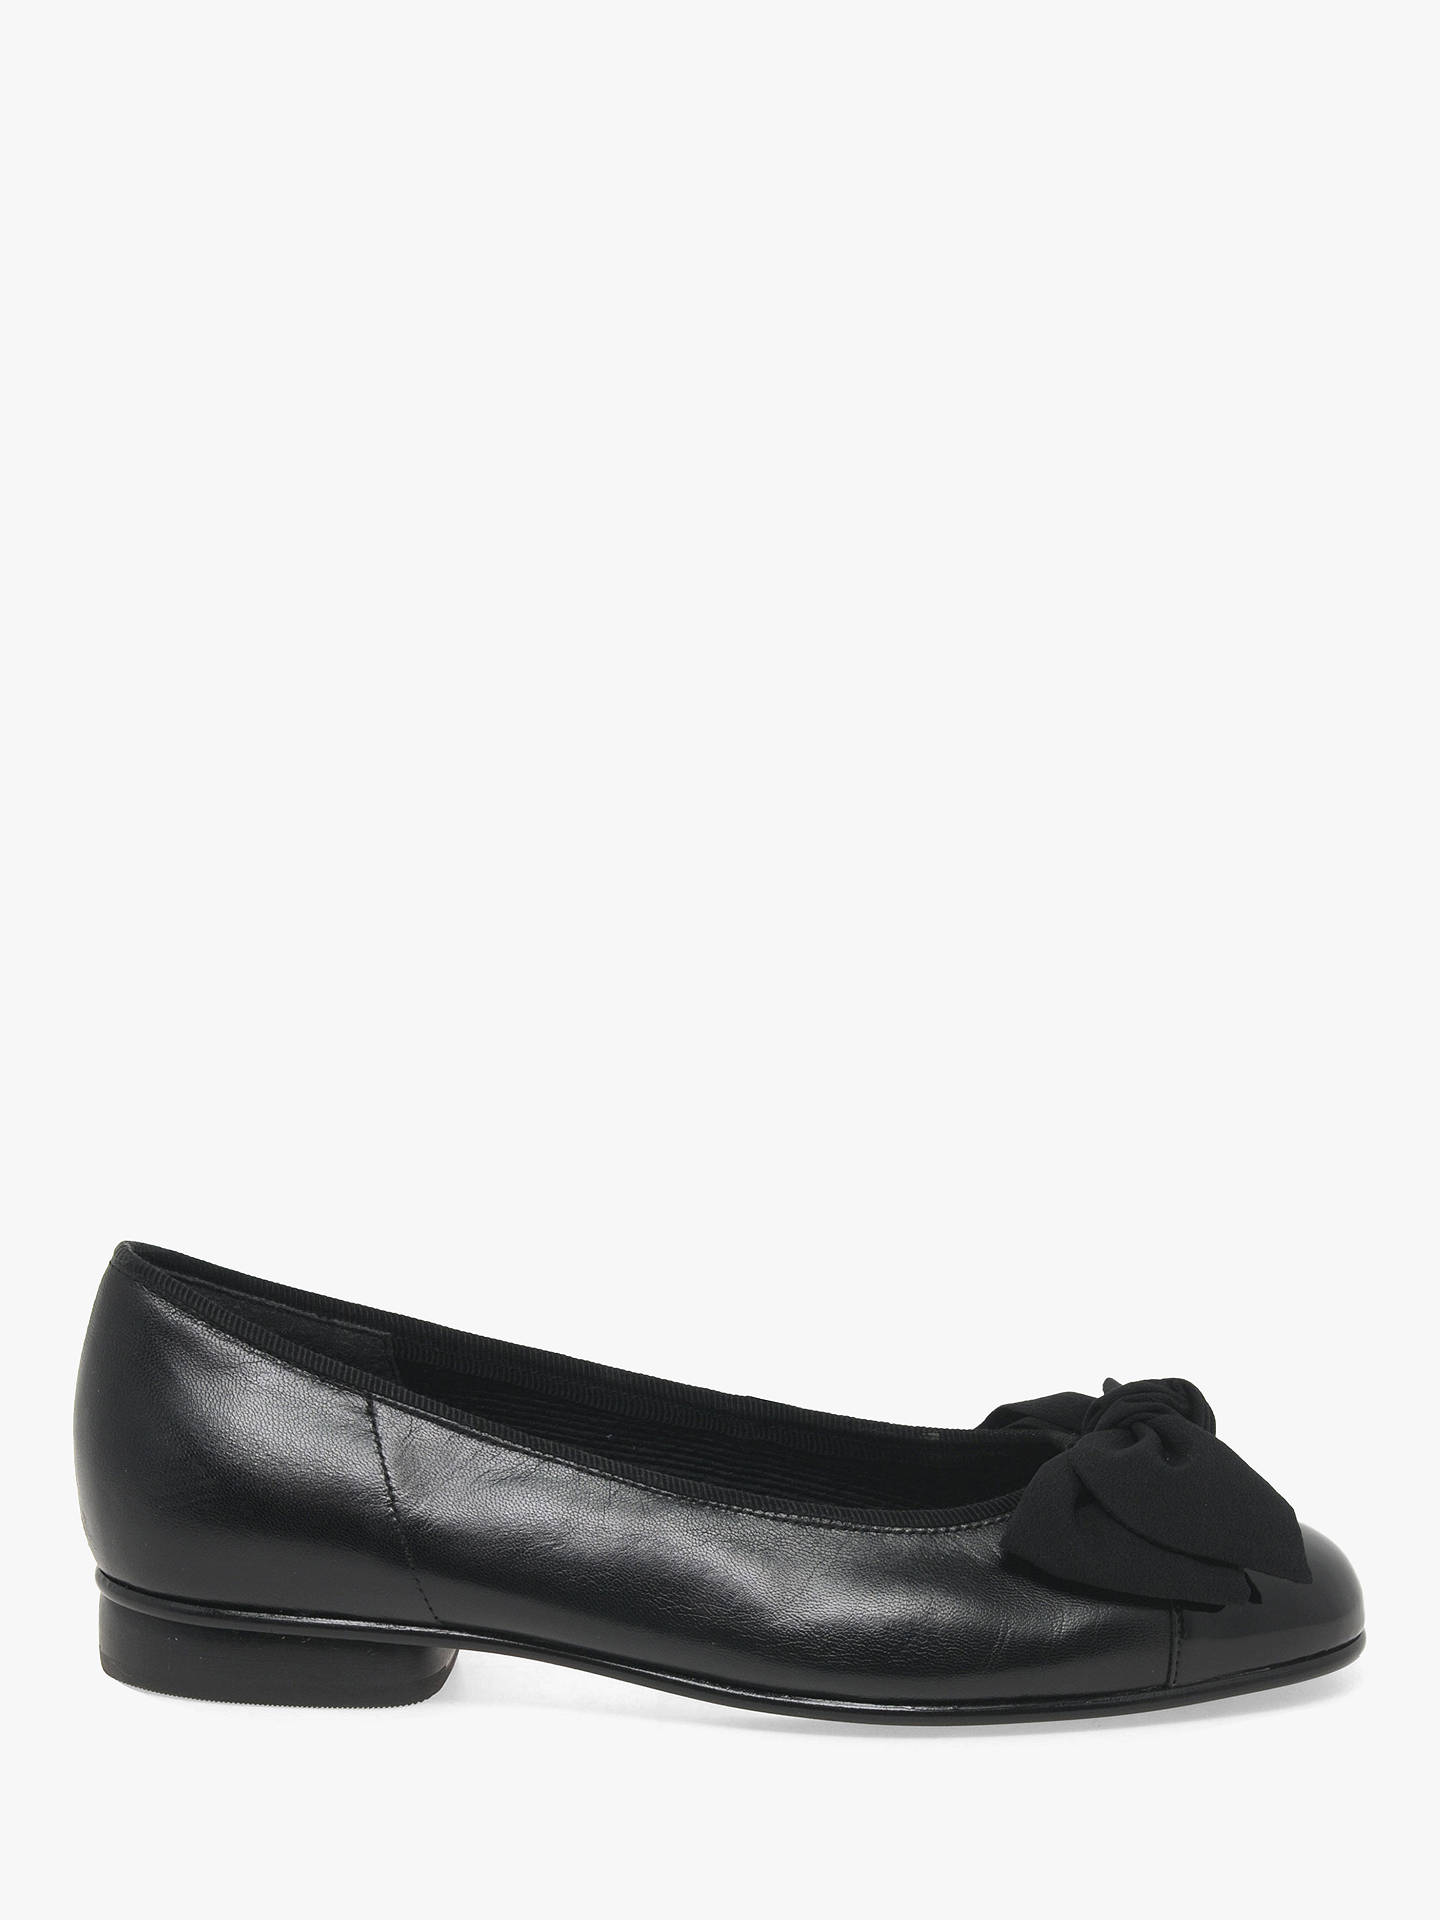 42daaa7fb5905 Buy Gabor Amy Ballet Patent Pumps, Black Leather, 3 Online at johnlewis.com  ...